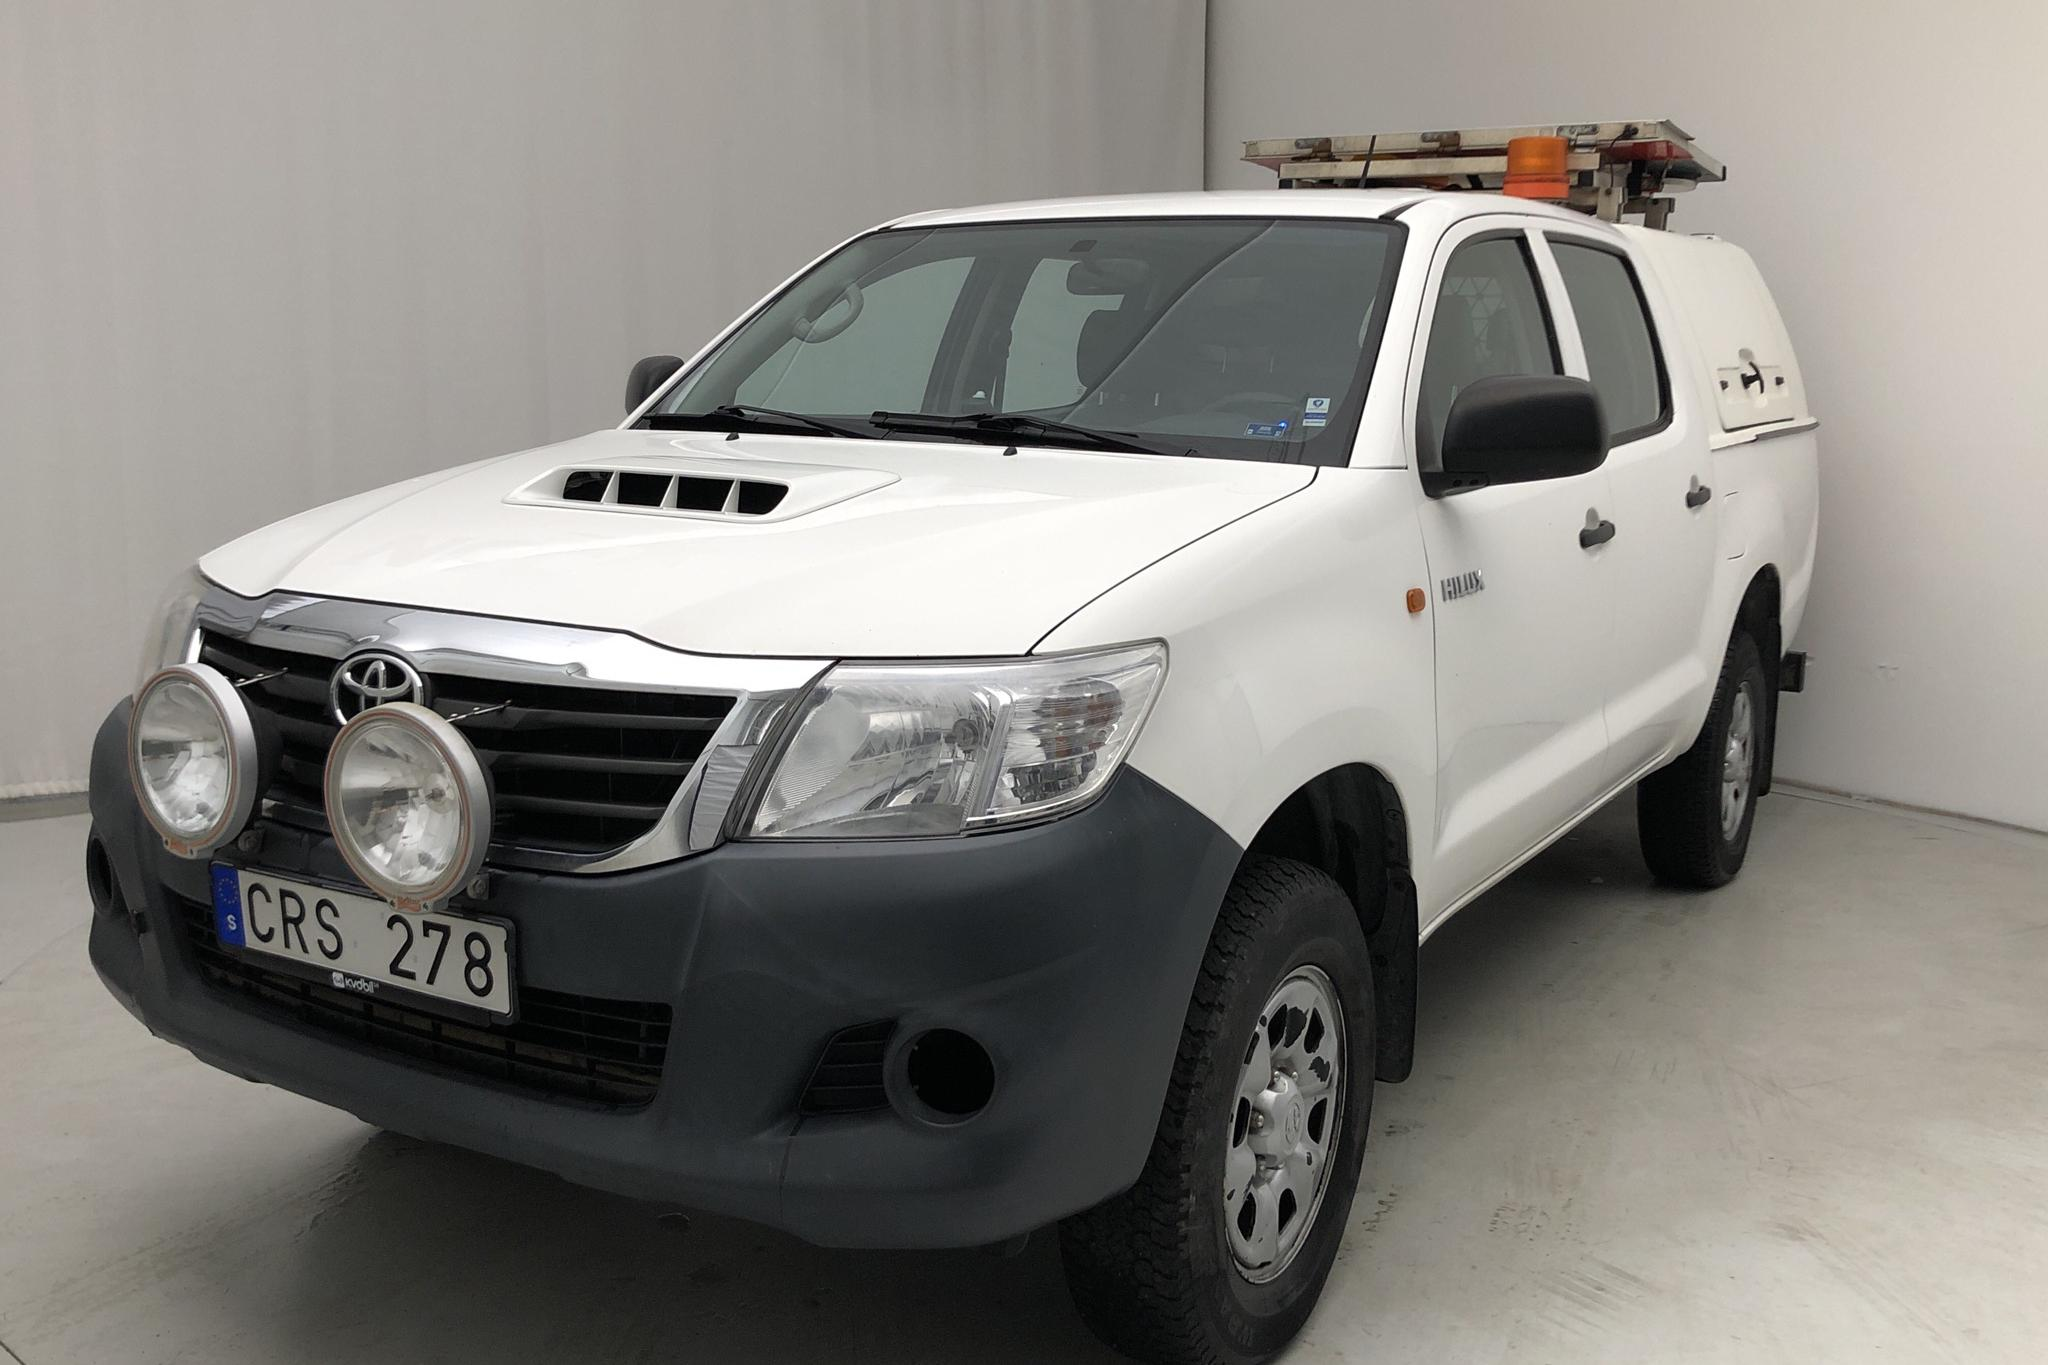 Toyota Hilux 2.5 D-4D 4WD (144hk) - 0 km - Manual - white - 2012